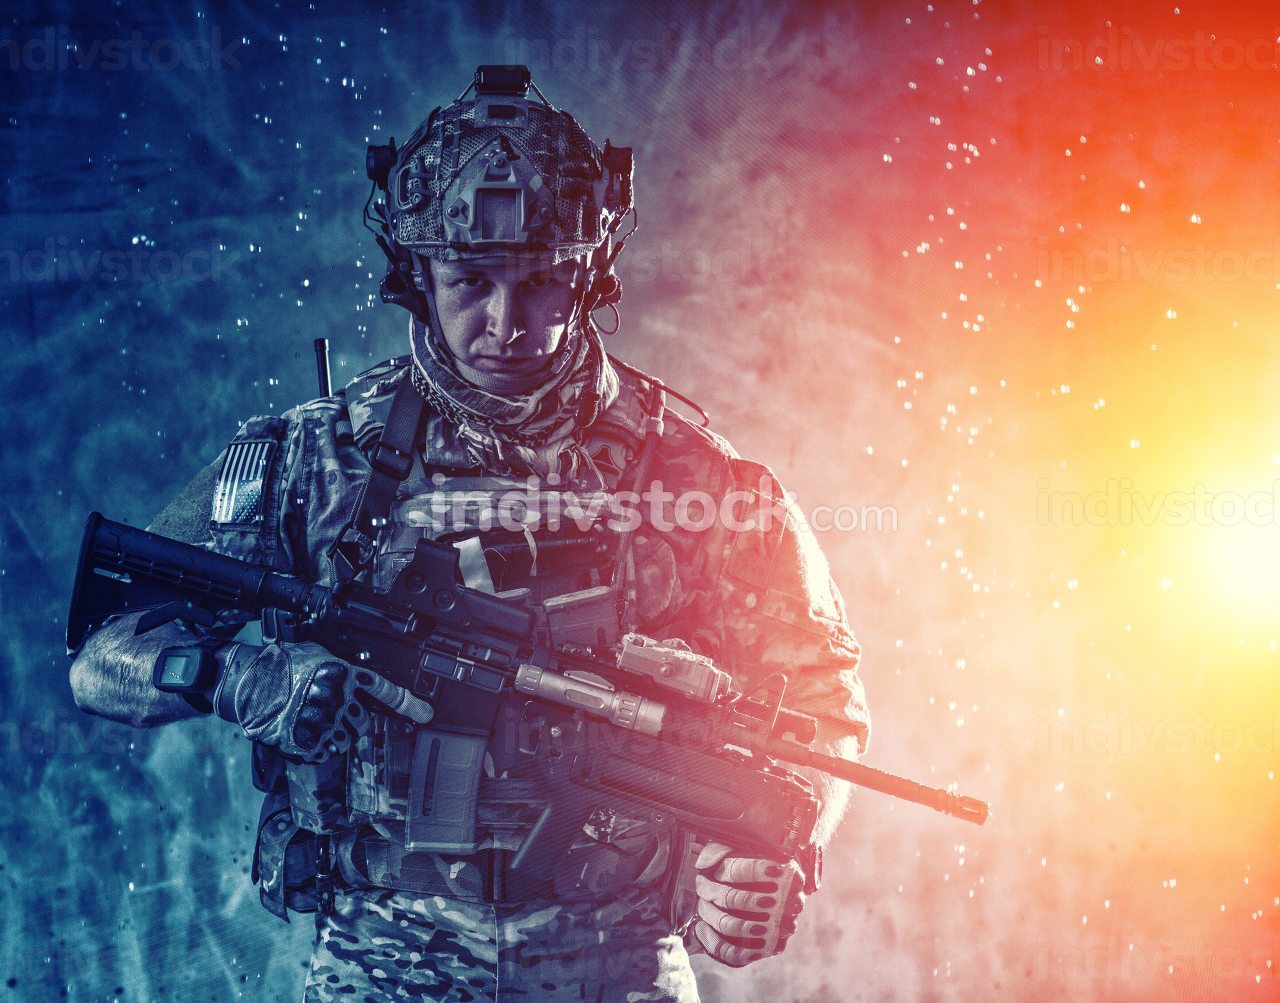 Anti terrorist squad fighter, army special forces rifleman in battle uniform, tactical radio headset, backpack, body armor, aiming service rifle with collimator sight, sneaking in darkness under rain